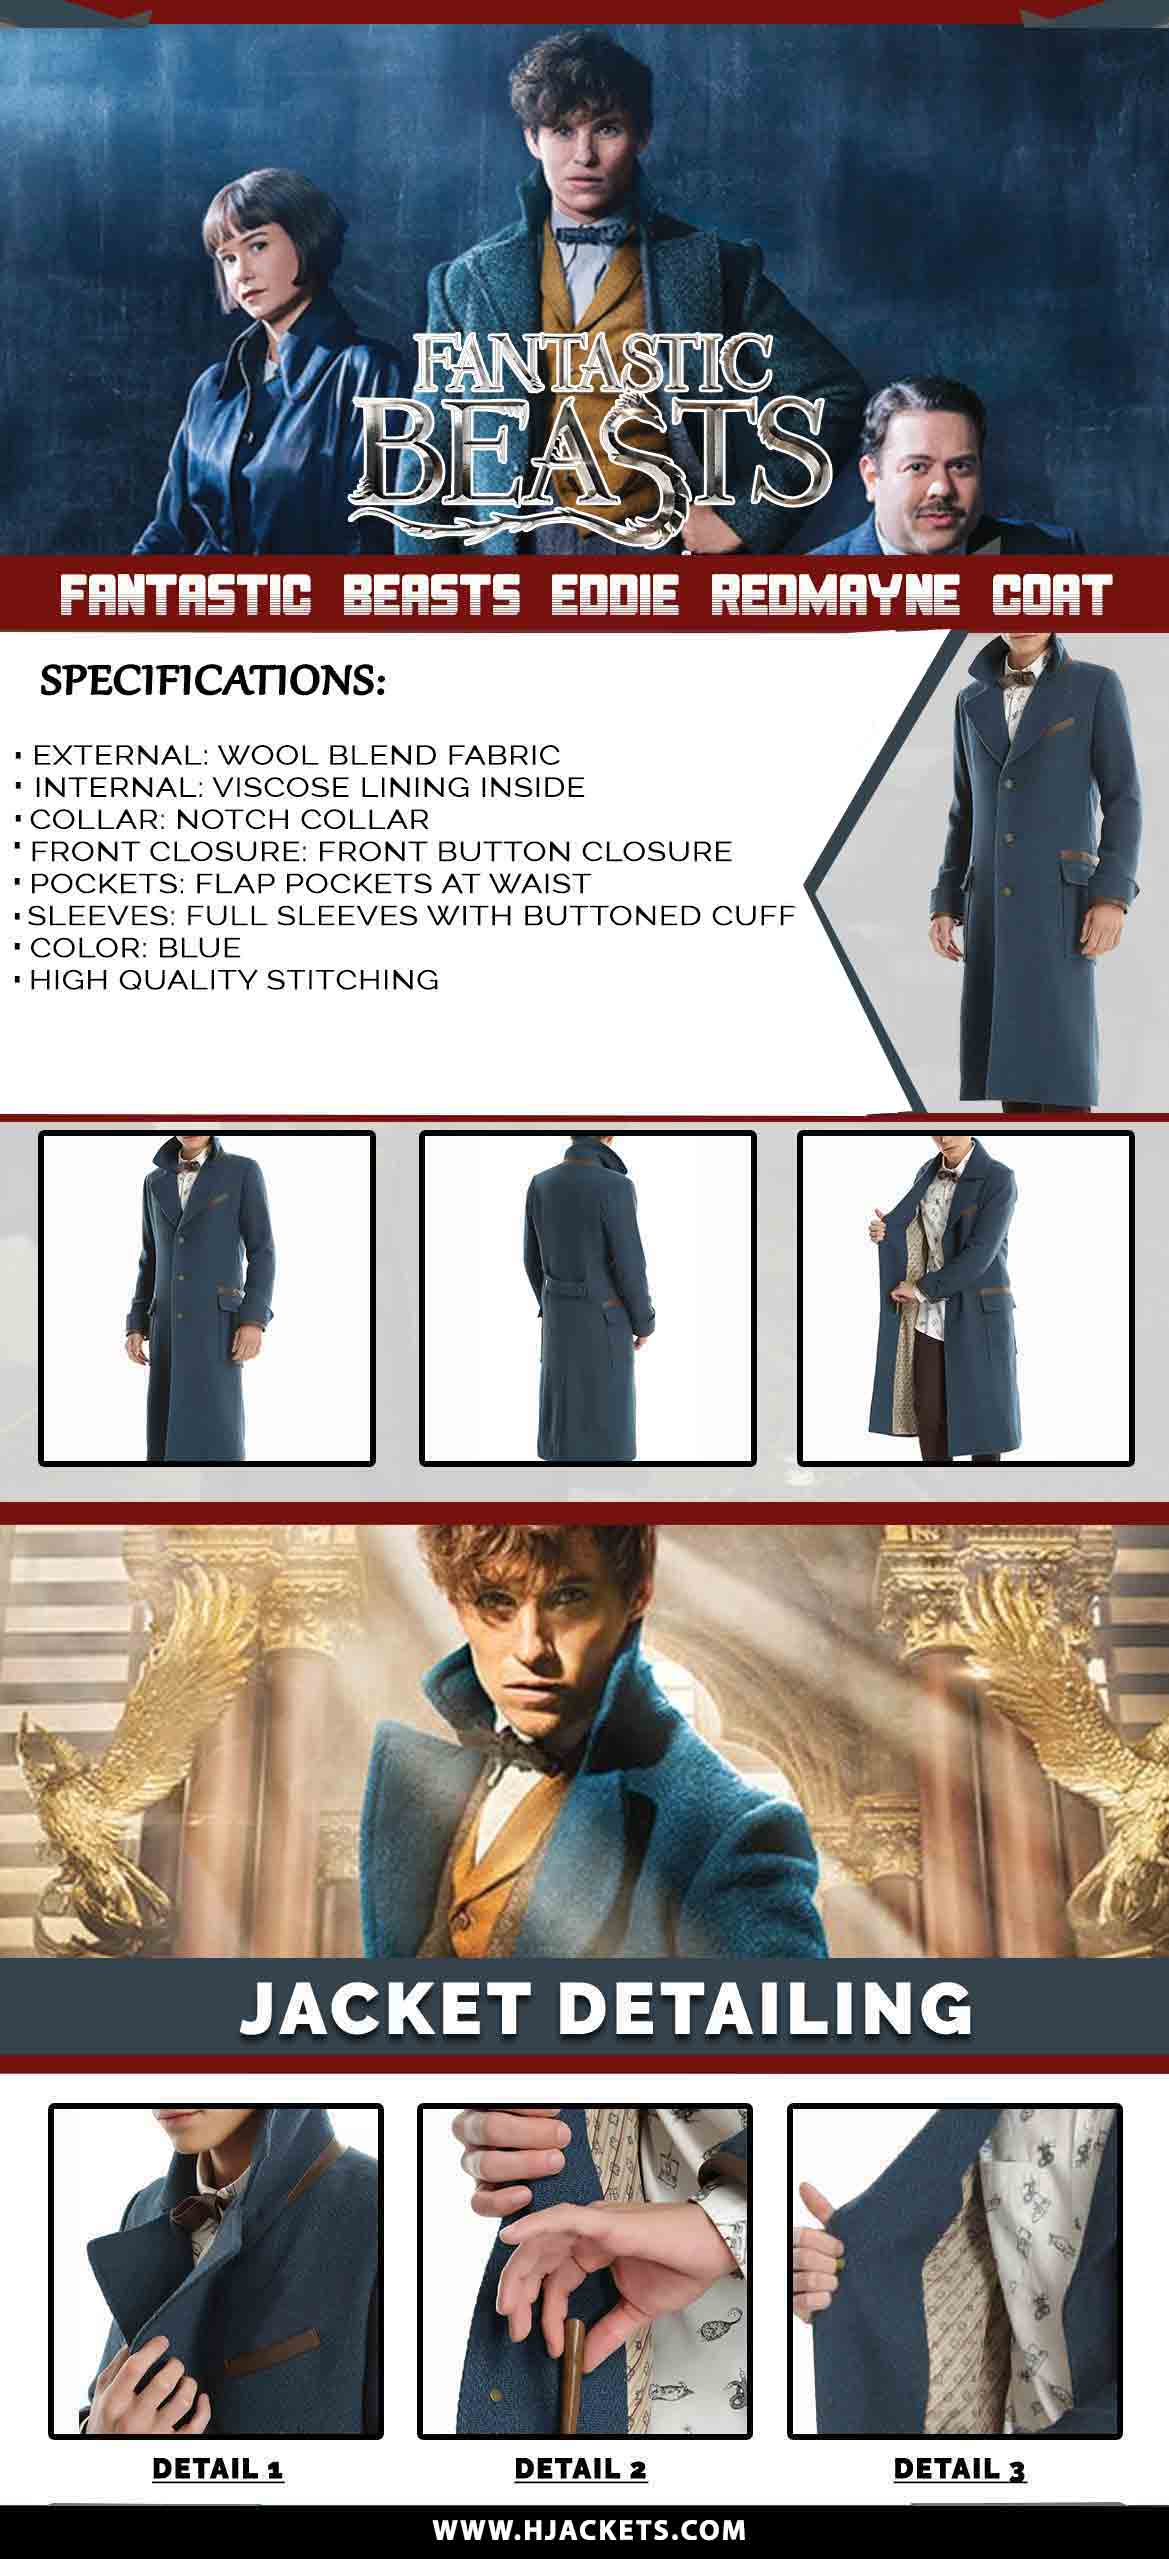 Fantastic Beasts Eddie Redmayne Coat Infographic